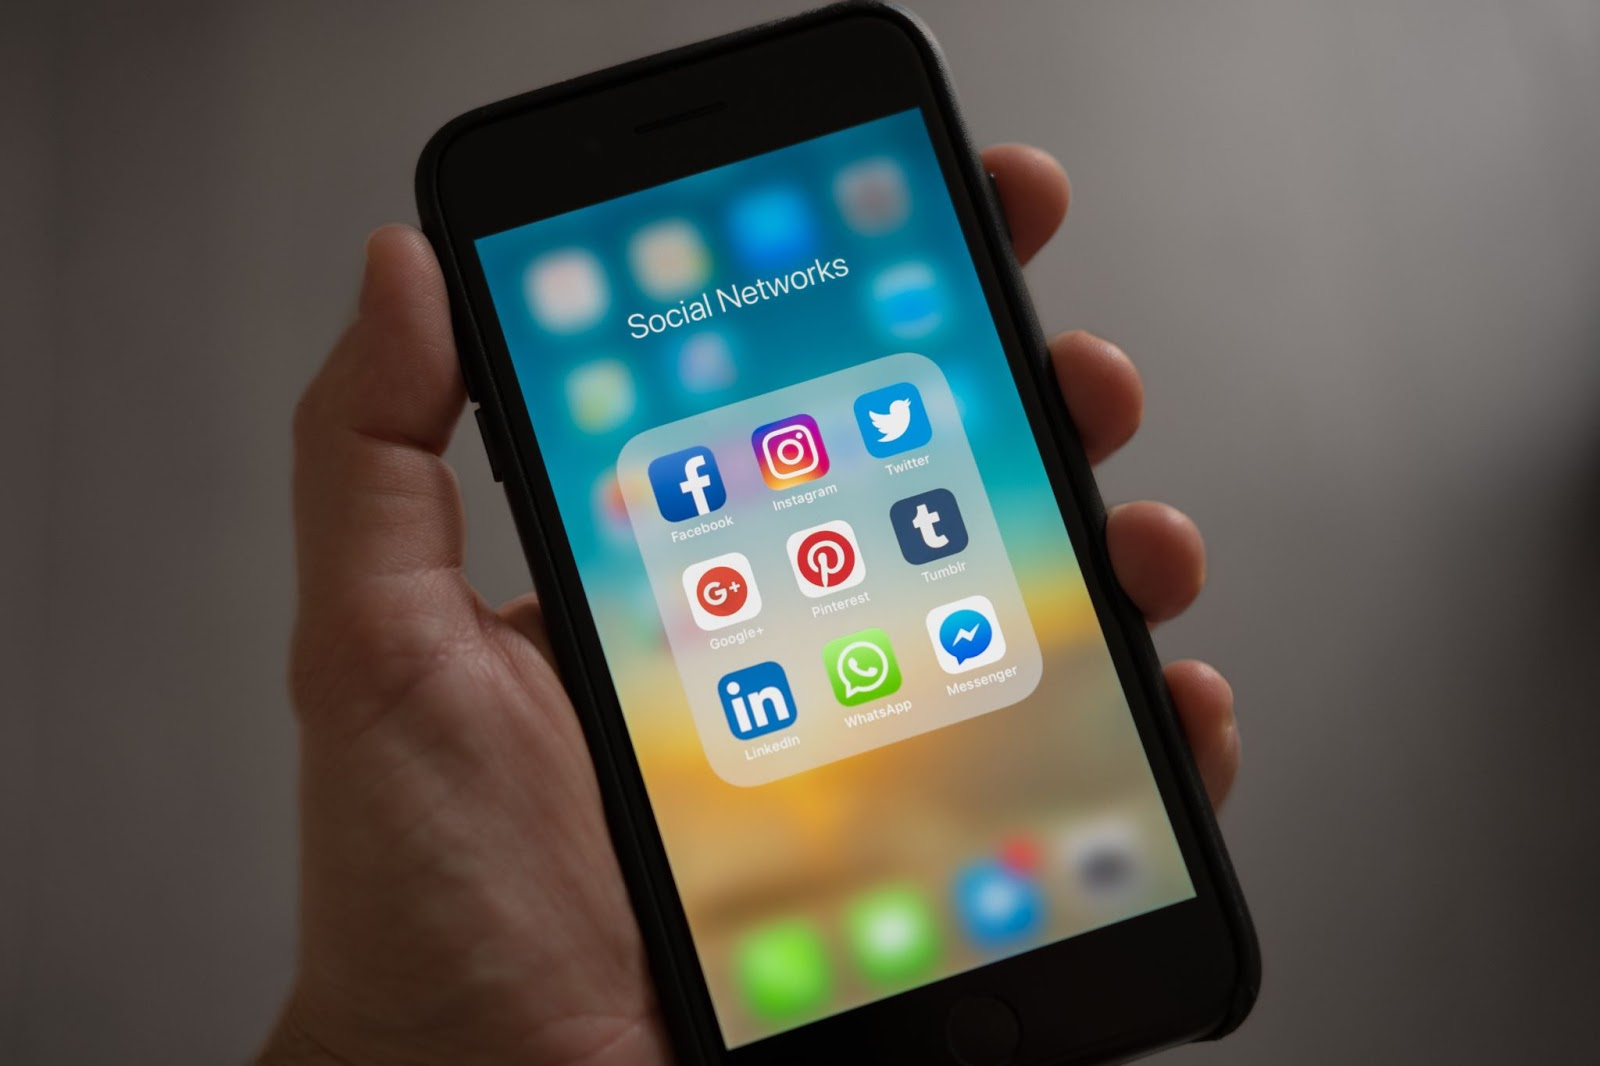 Indian government mulling fines for social media firms under IT rules